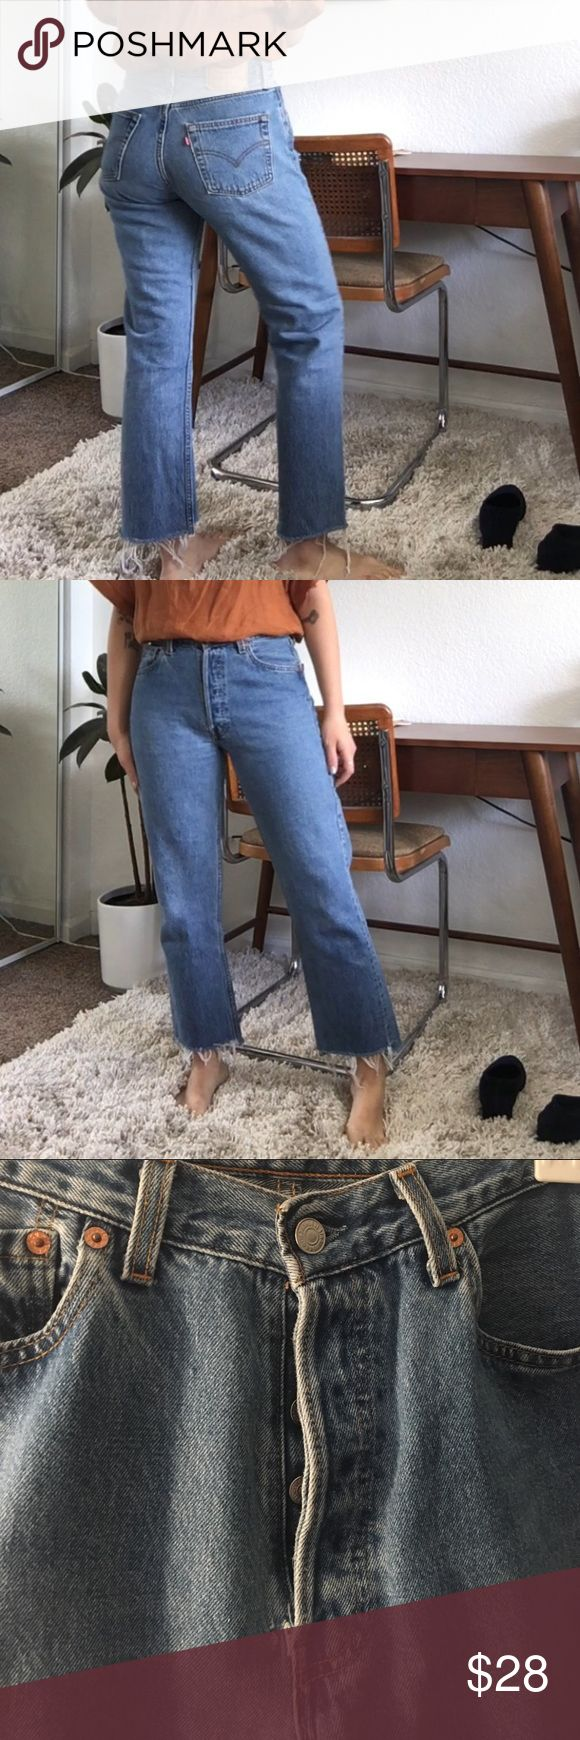 Vintage Levi's 501s Pre-loved vintage condition, fits 28-29, or US size 6-8. I'm a six and they're a little relaxed on me. Has slight wear near the fly, shown in last pic. But they are still in great used condition Levi's Jeans Straight Leg